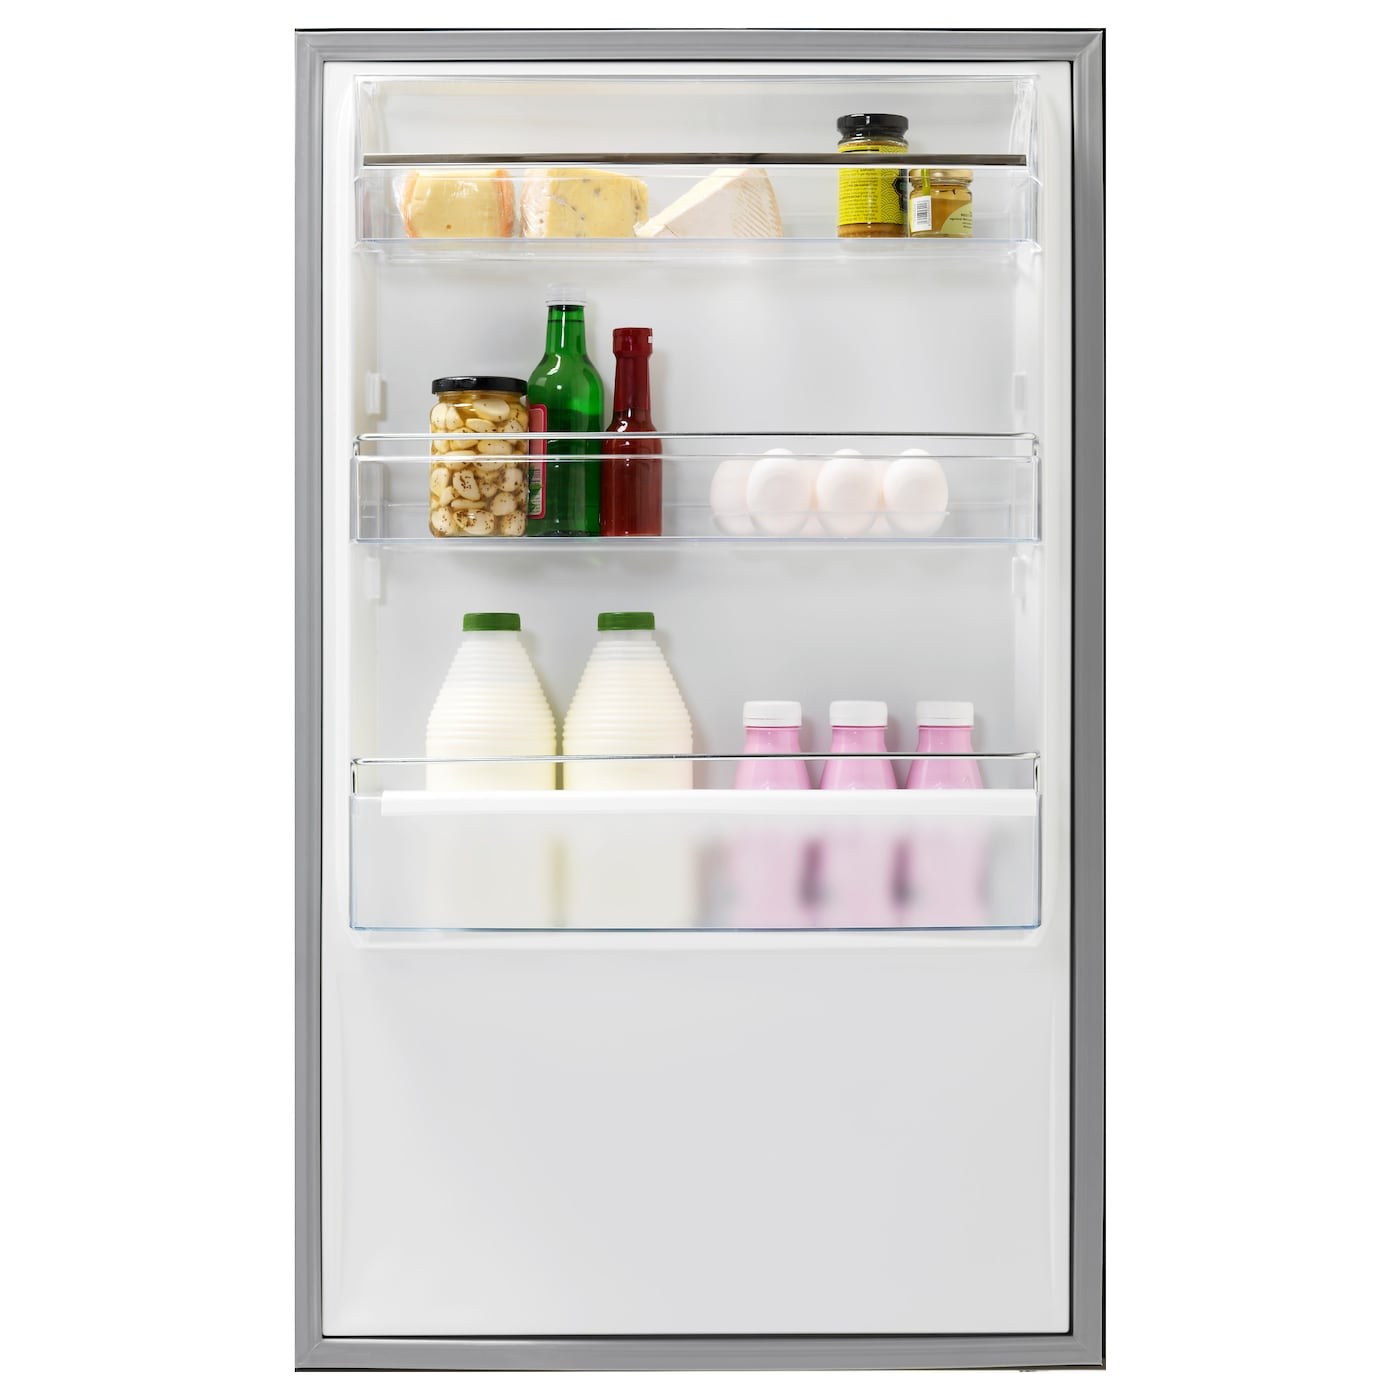 IKEA KYLSLAGEN fridge/freezer 5 year guarantee. Read about the terms in the guarantee brochure.